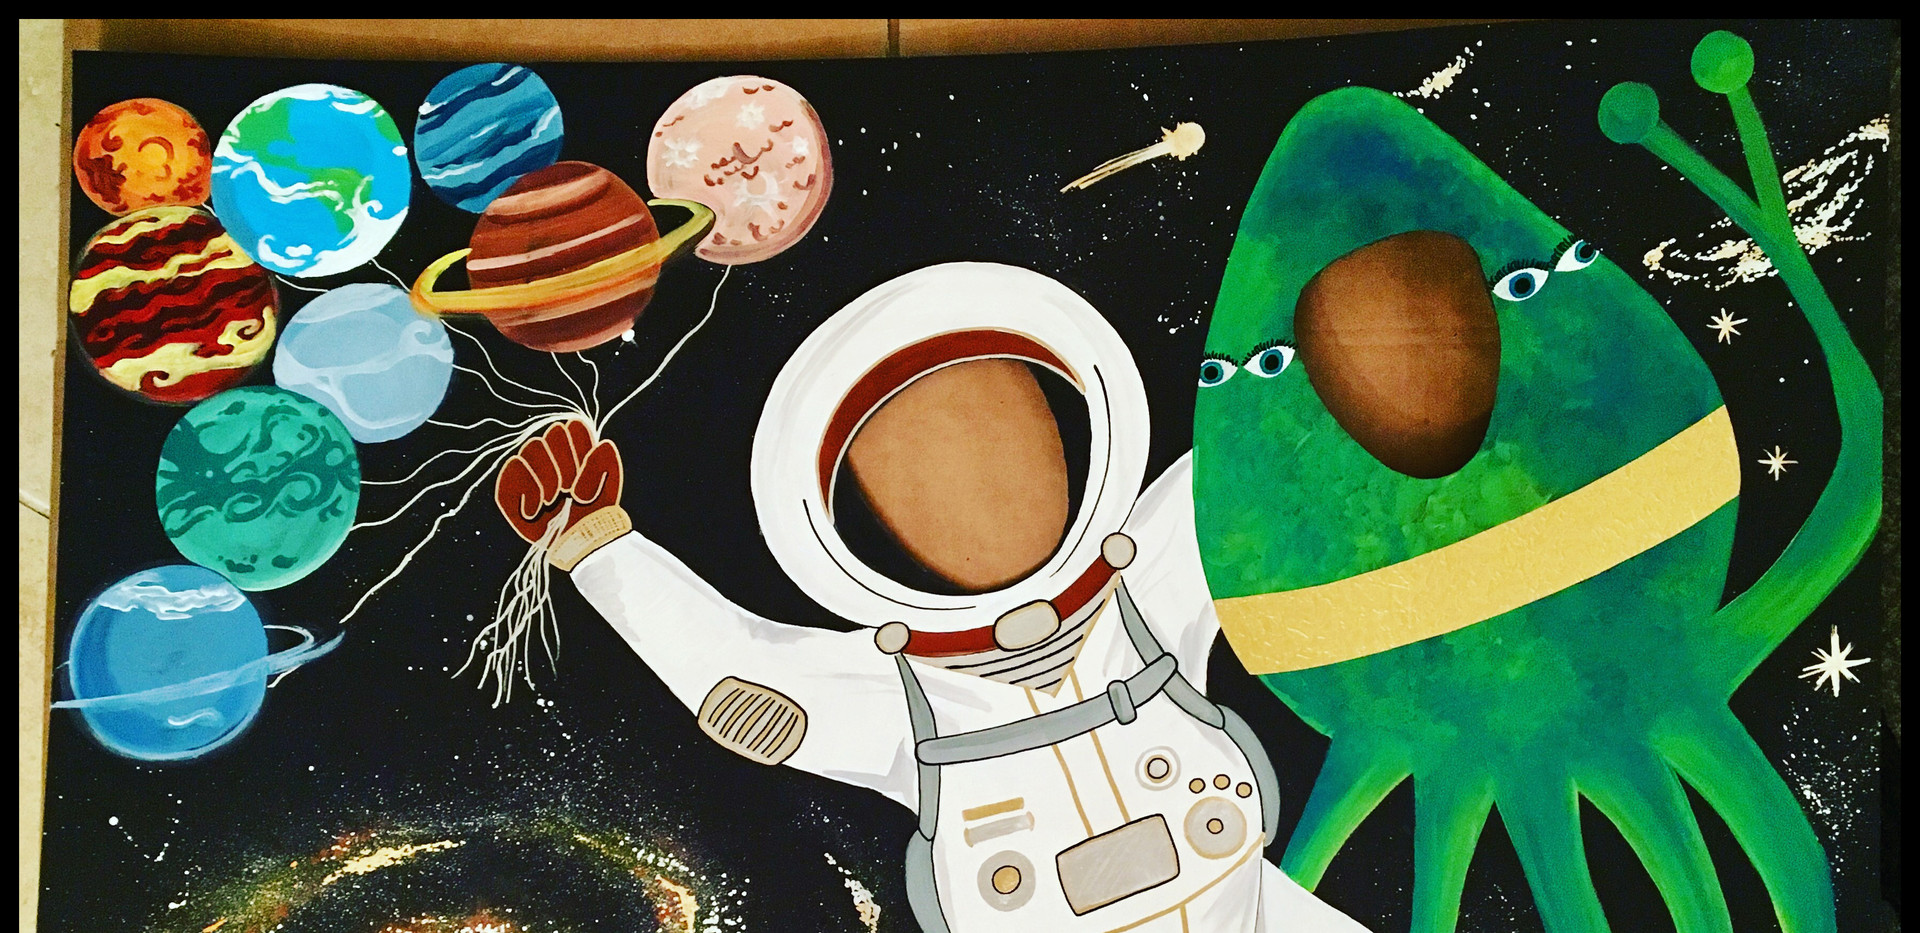 face-hole-galaxy-space-alien-painted-fun